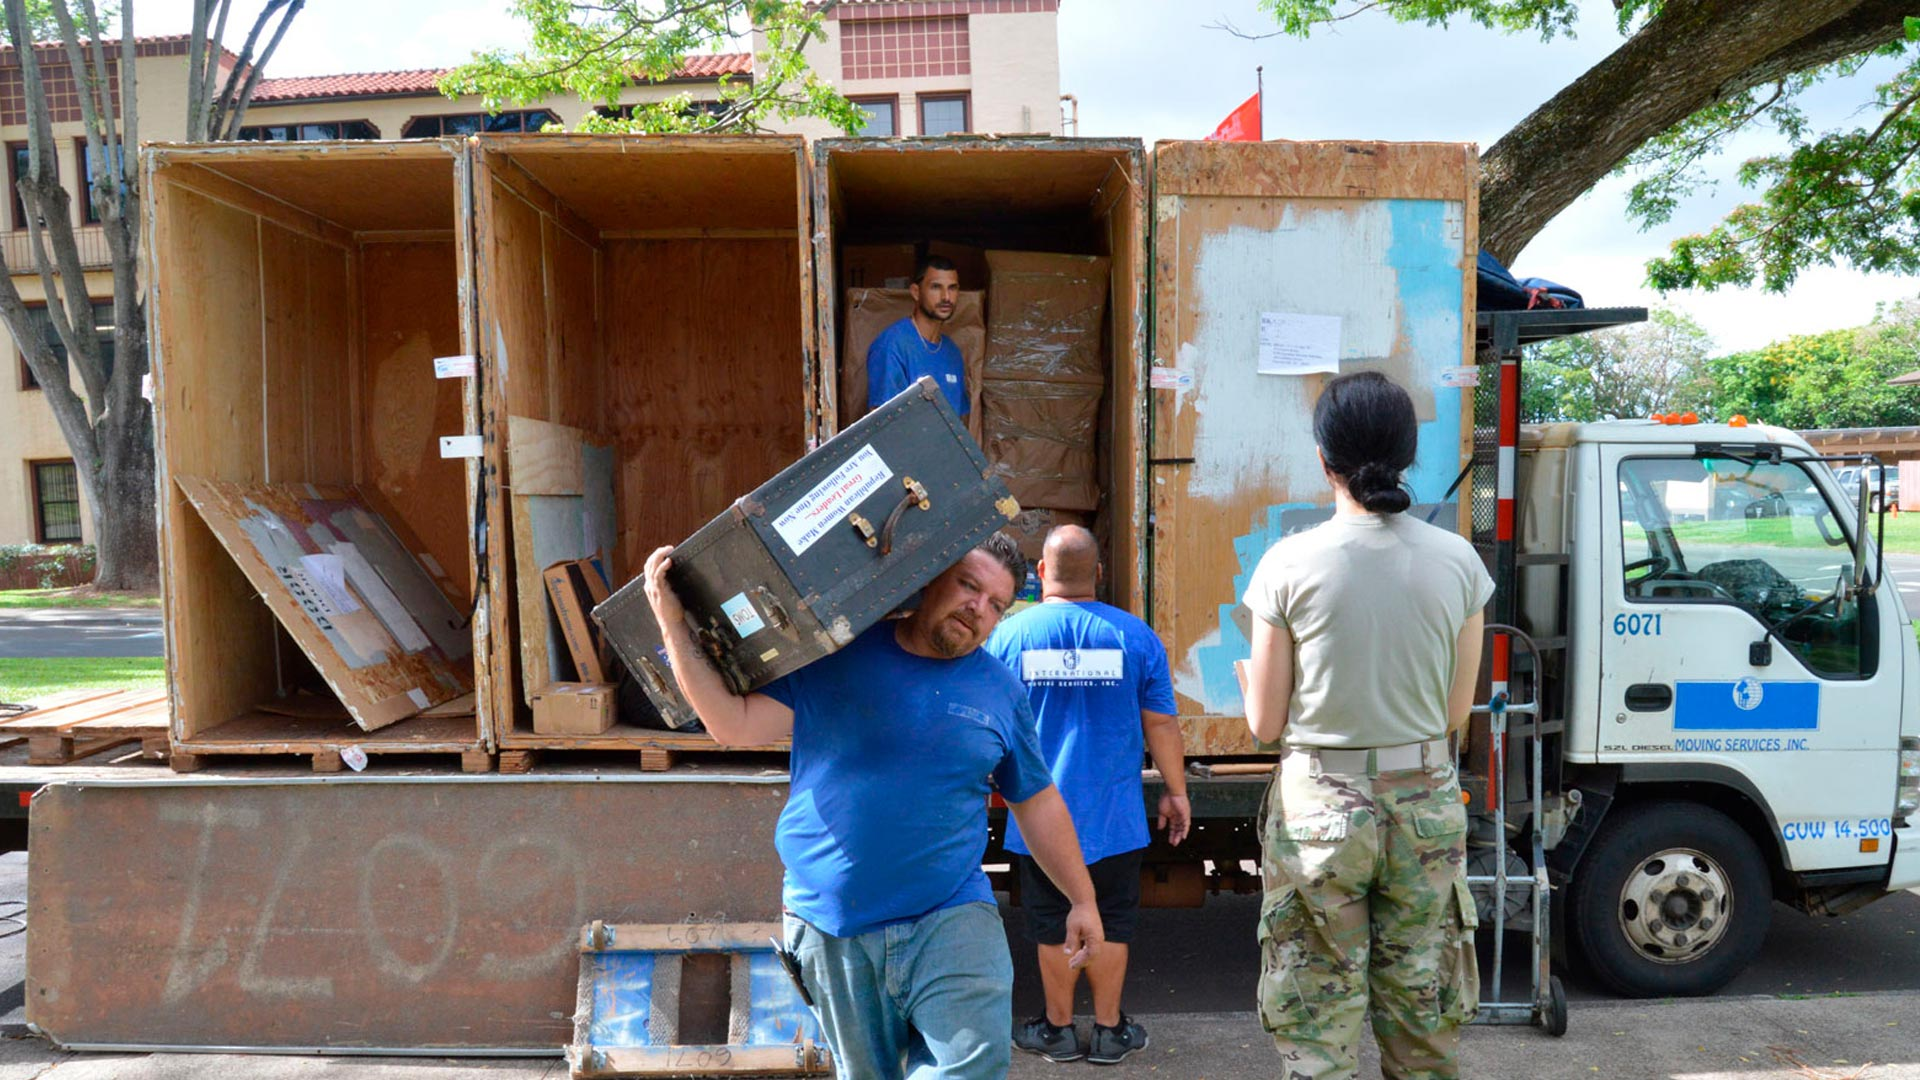 Army soldier relocating, movers unloading truck